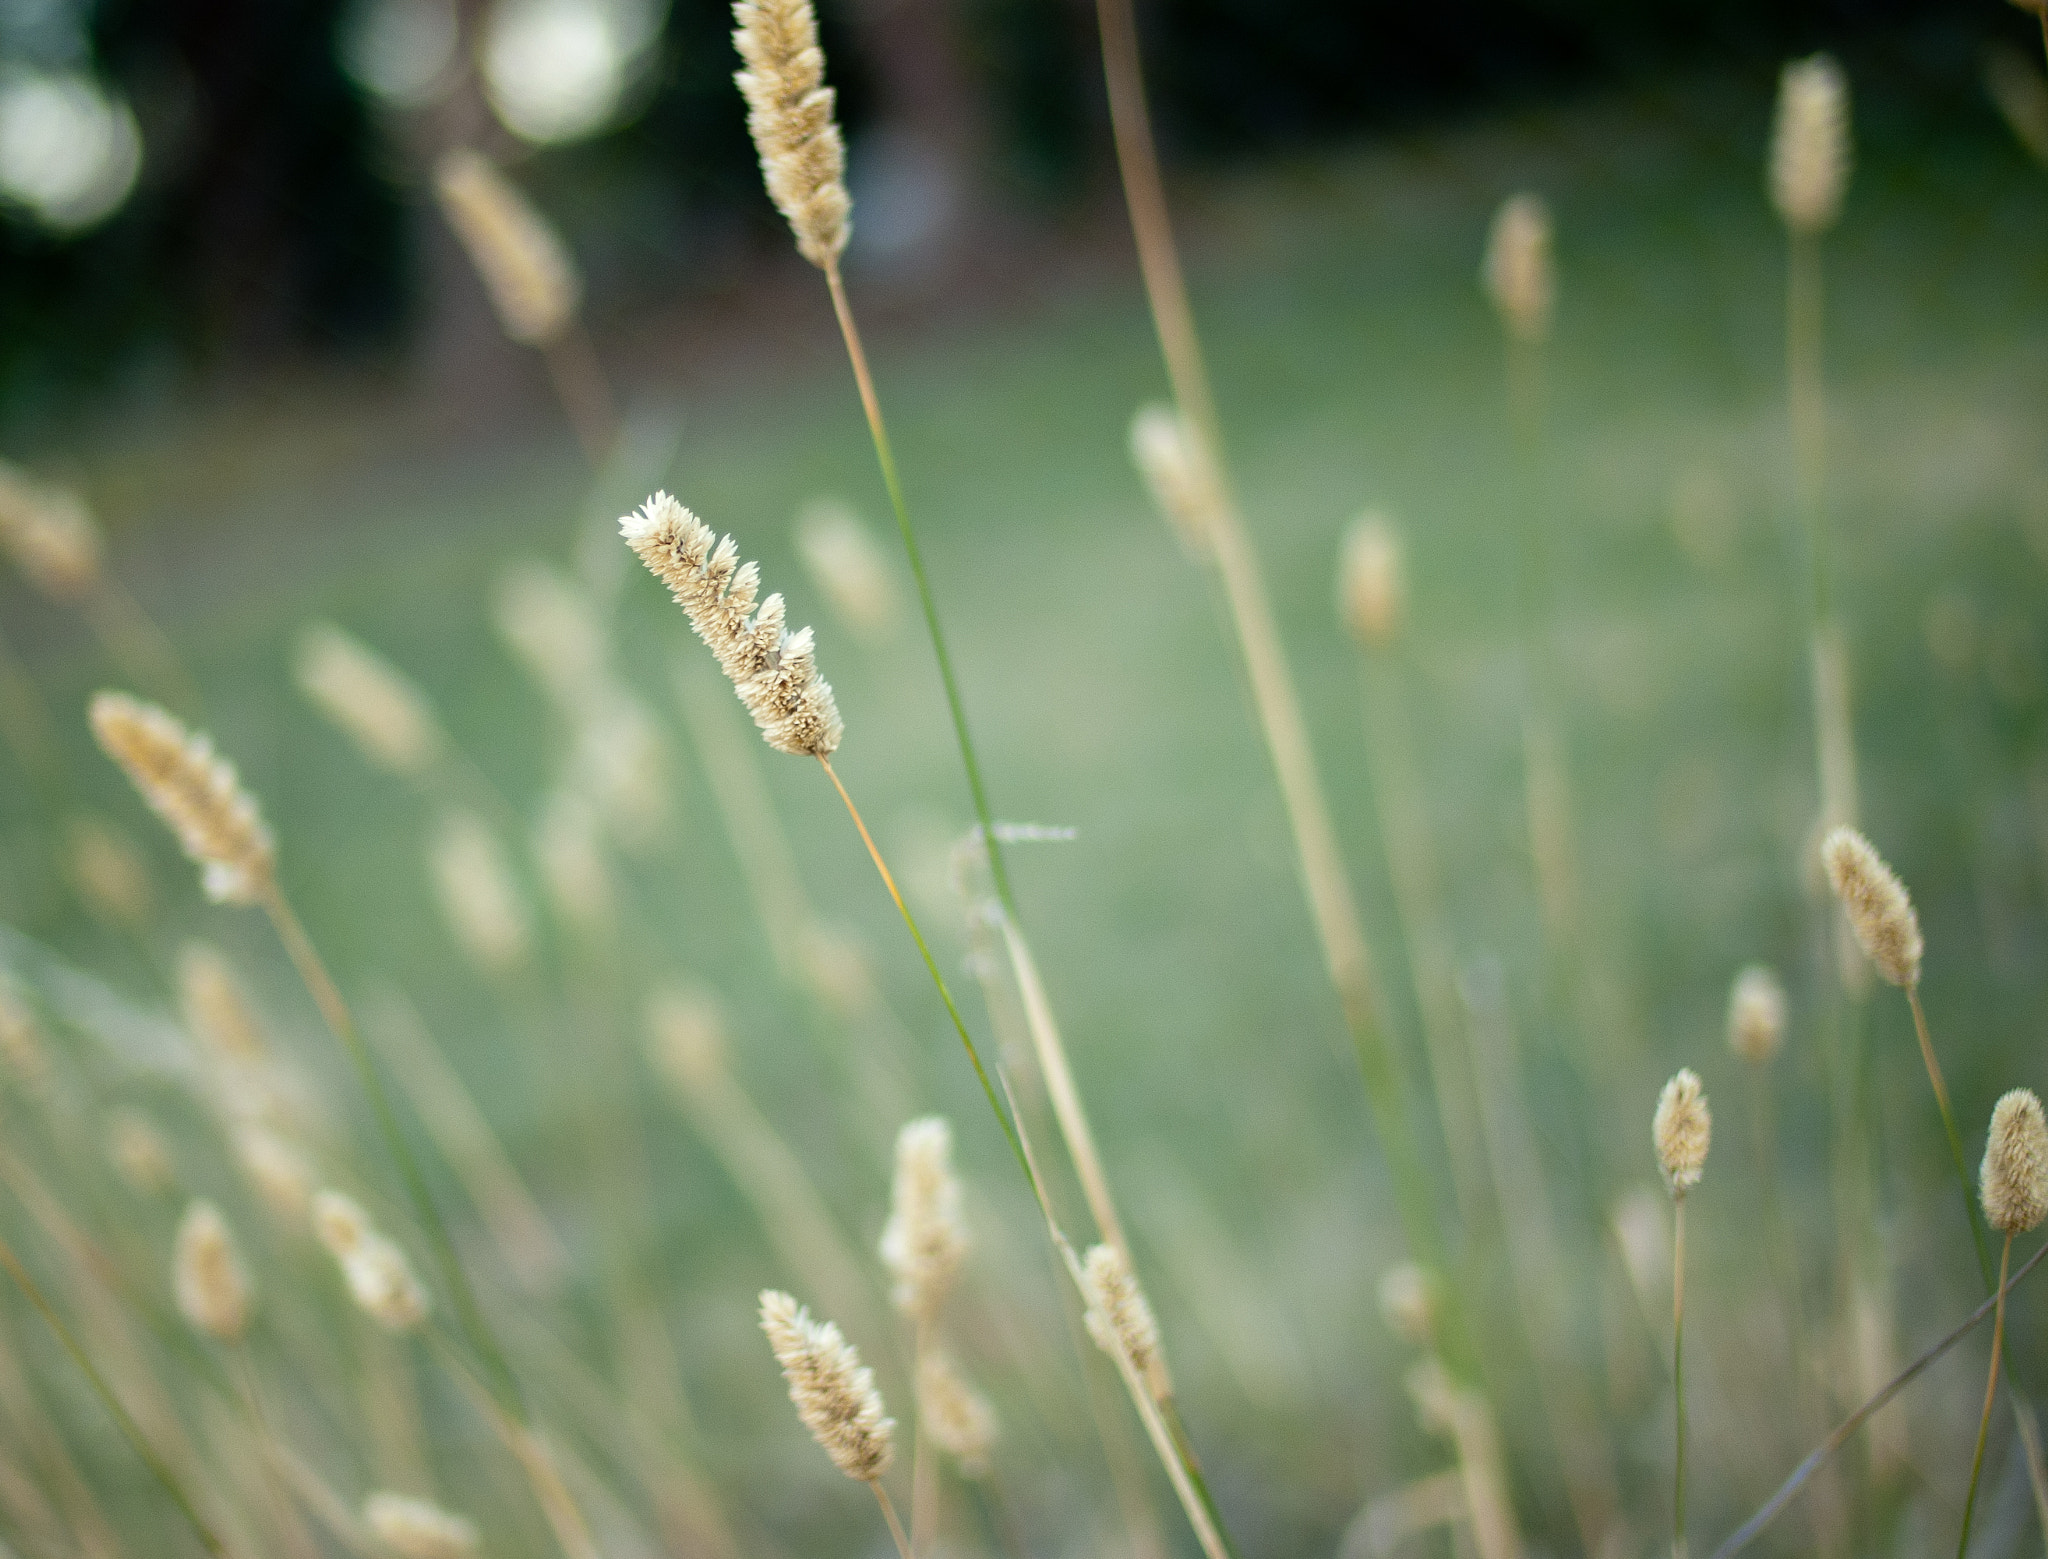 Photograph wild grasses by alistair noble on 500px